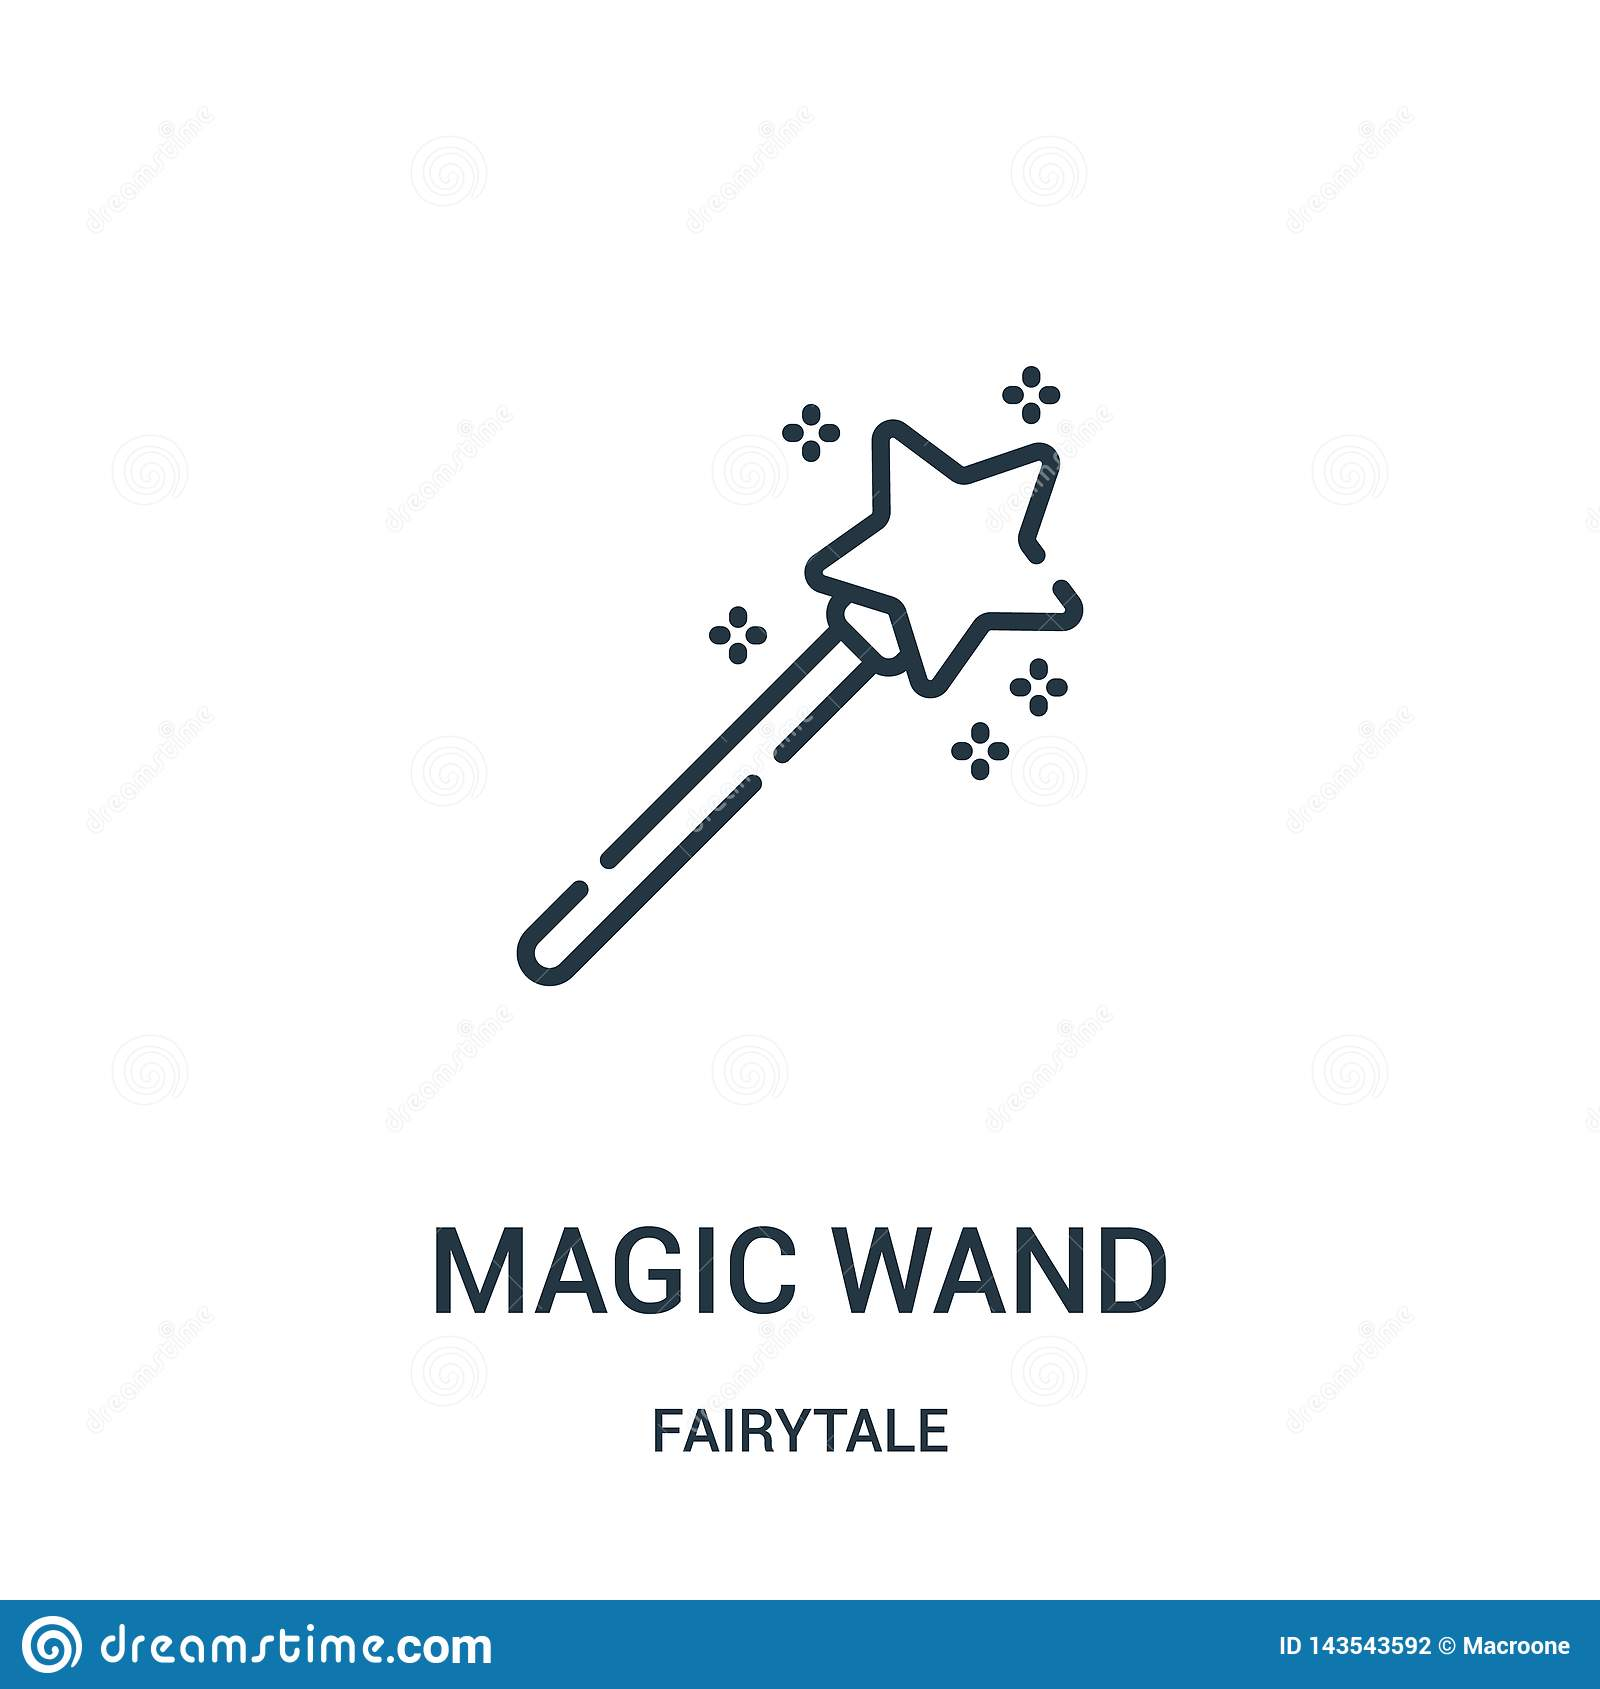 magic wand icon vector from fairytale collection. Thin line magic wand outline icon vector illustration